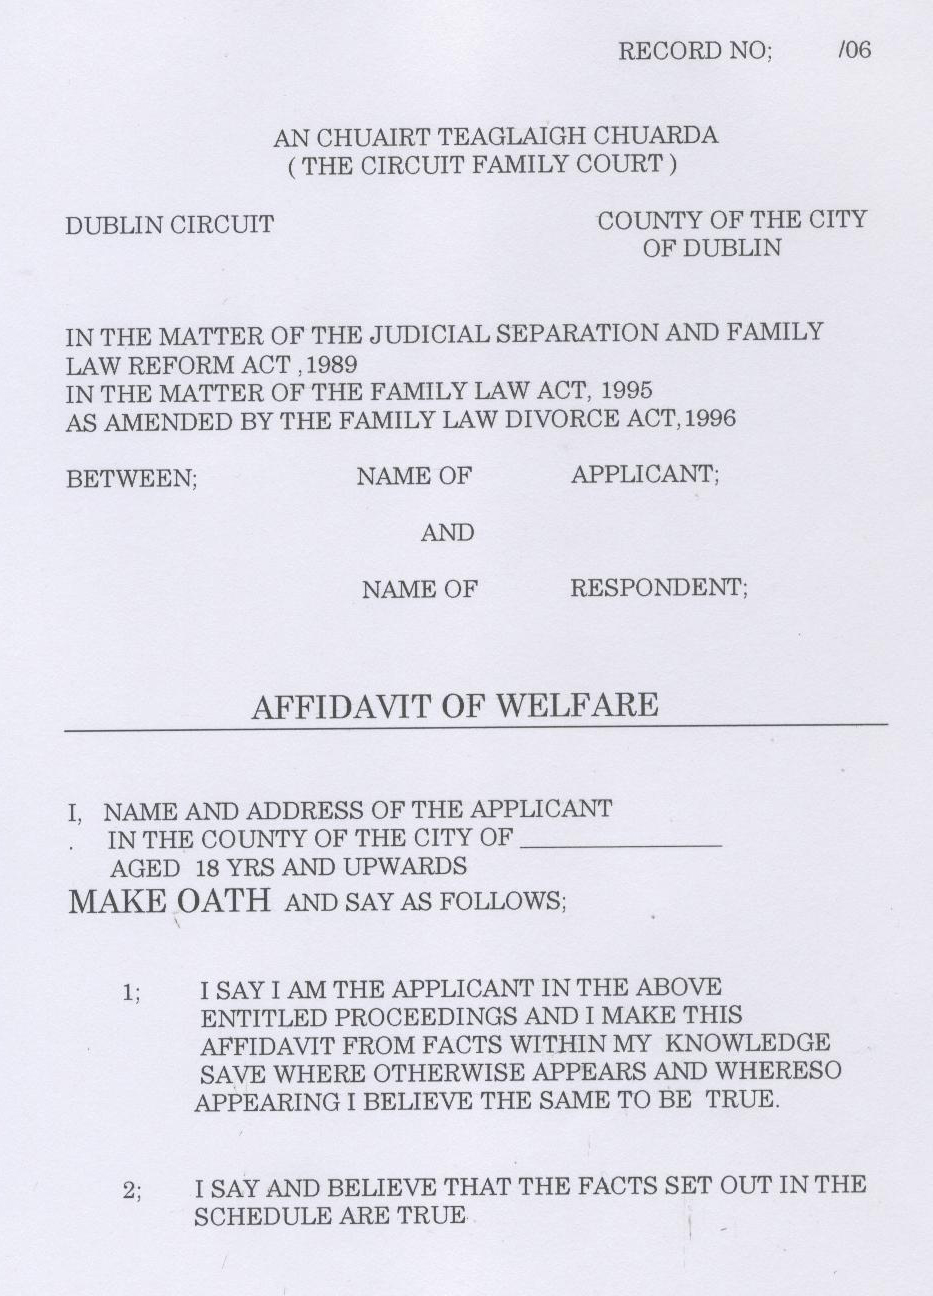 Click Here To View The First Page Of A Sample Affidavit Welfare